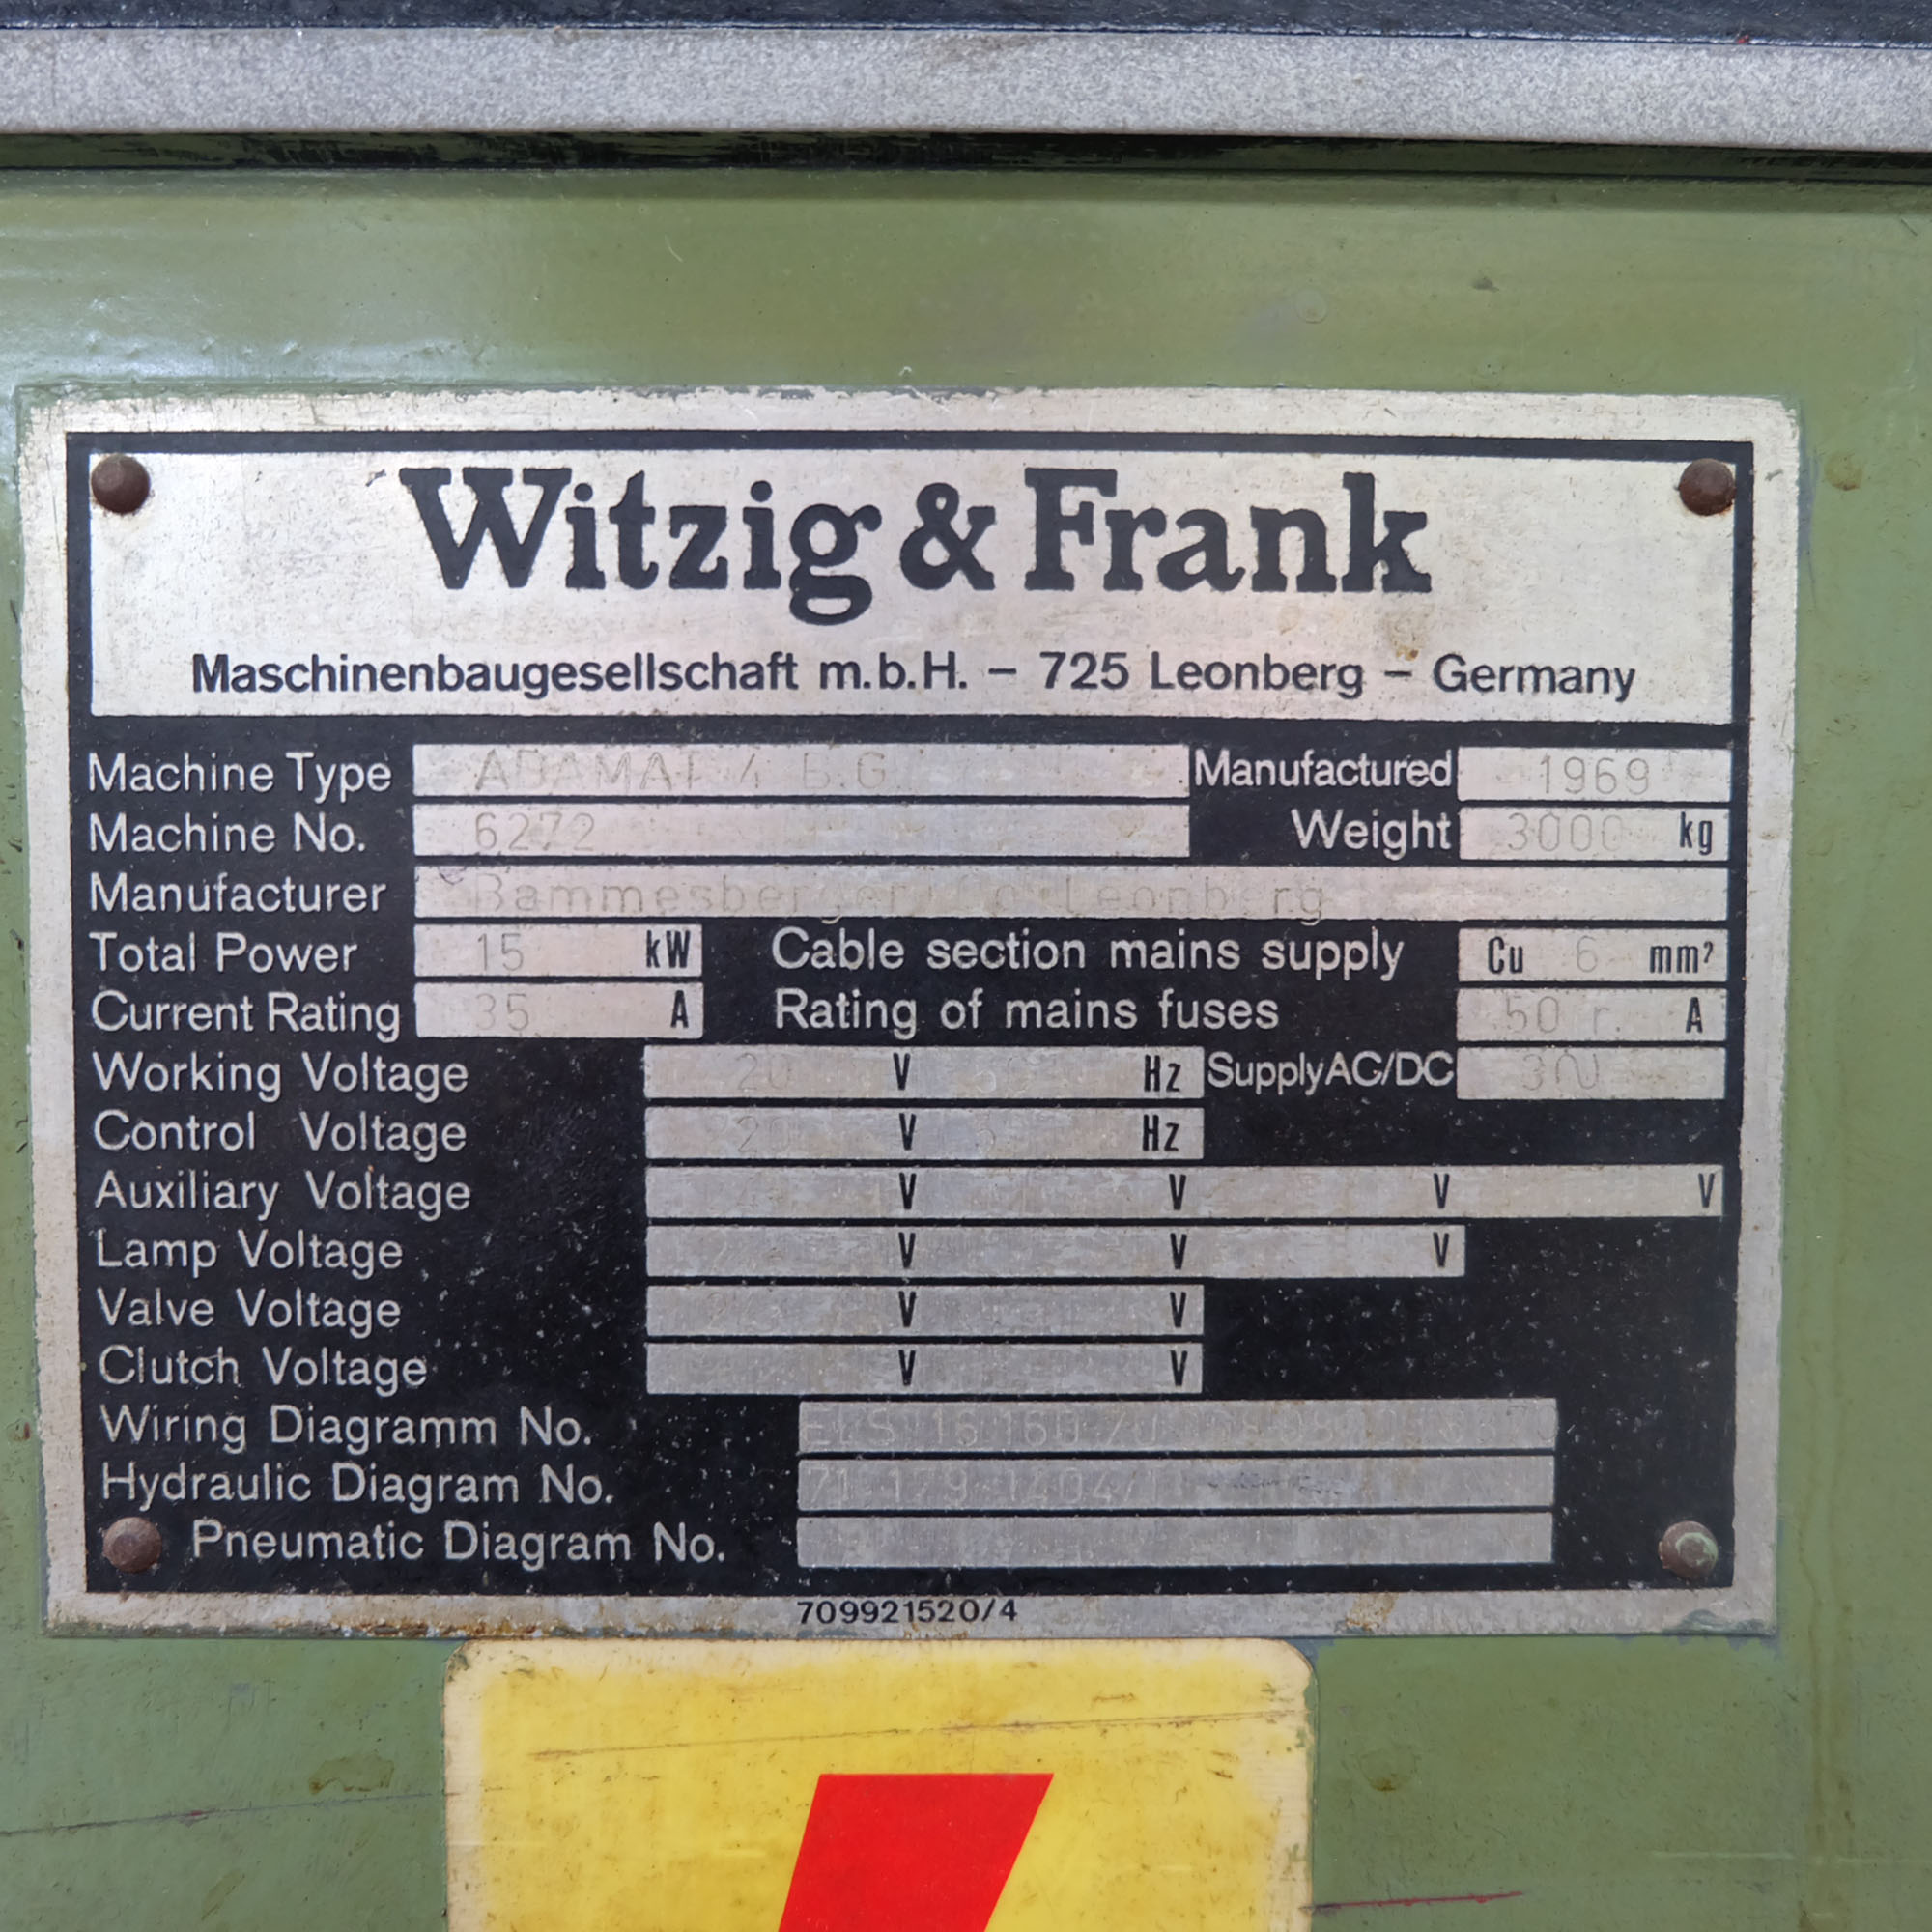 Witzig & Frank Model Adamat 4 B.G. Six Station Indexing Rotary Transfer Machine. - Image 12 of 13